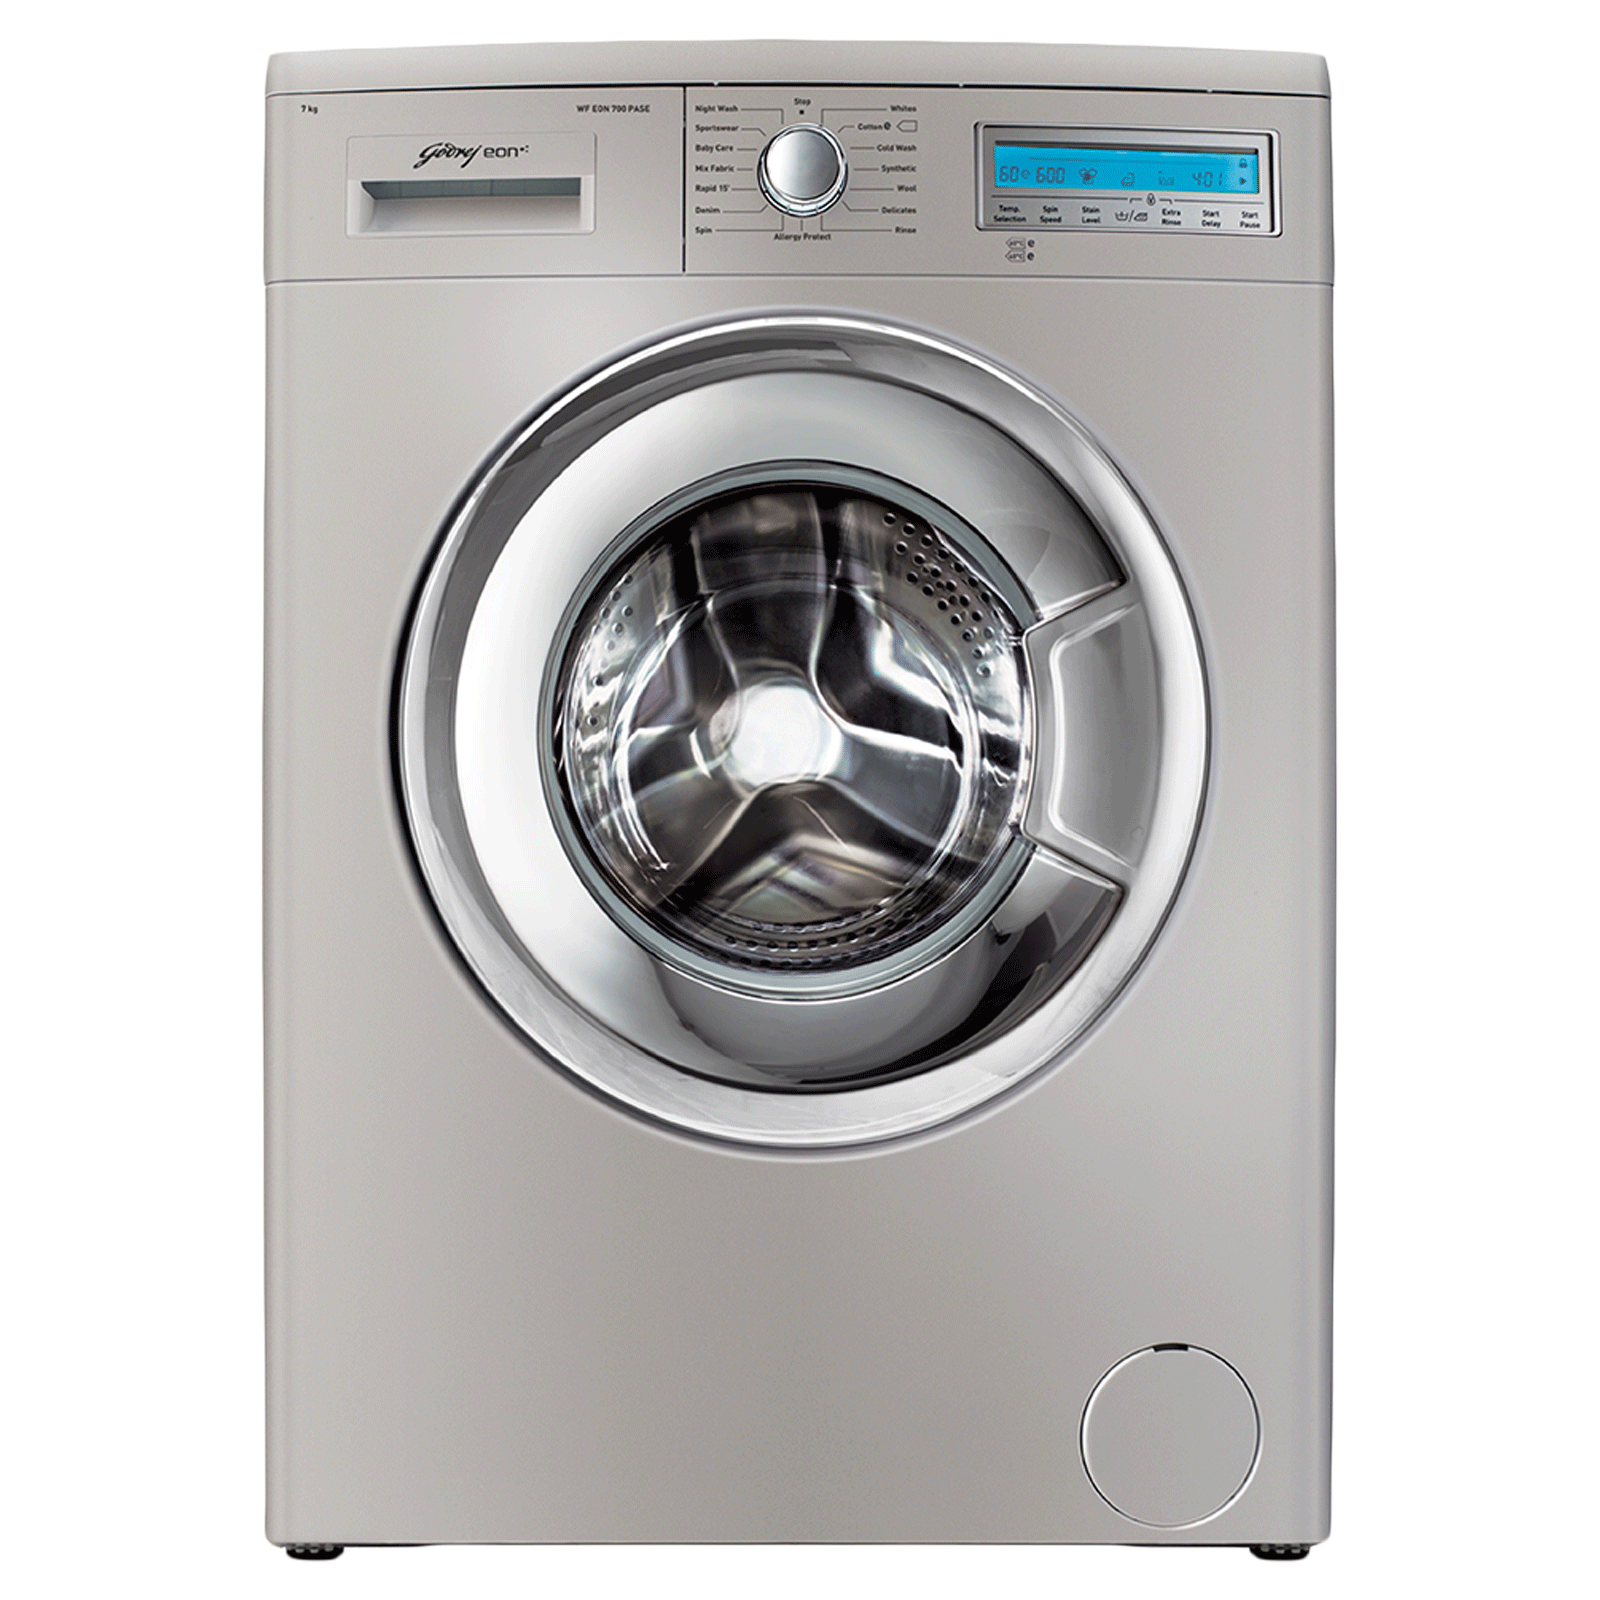 Godrej Eon 7 kg Fully Automatic Front Load Washing Machine (Error Detection System, WF EON 7010 PASC, Silver)_1